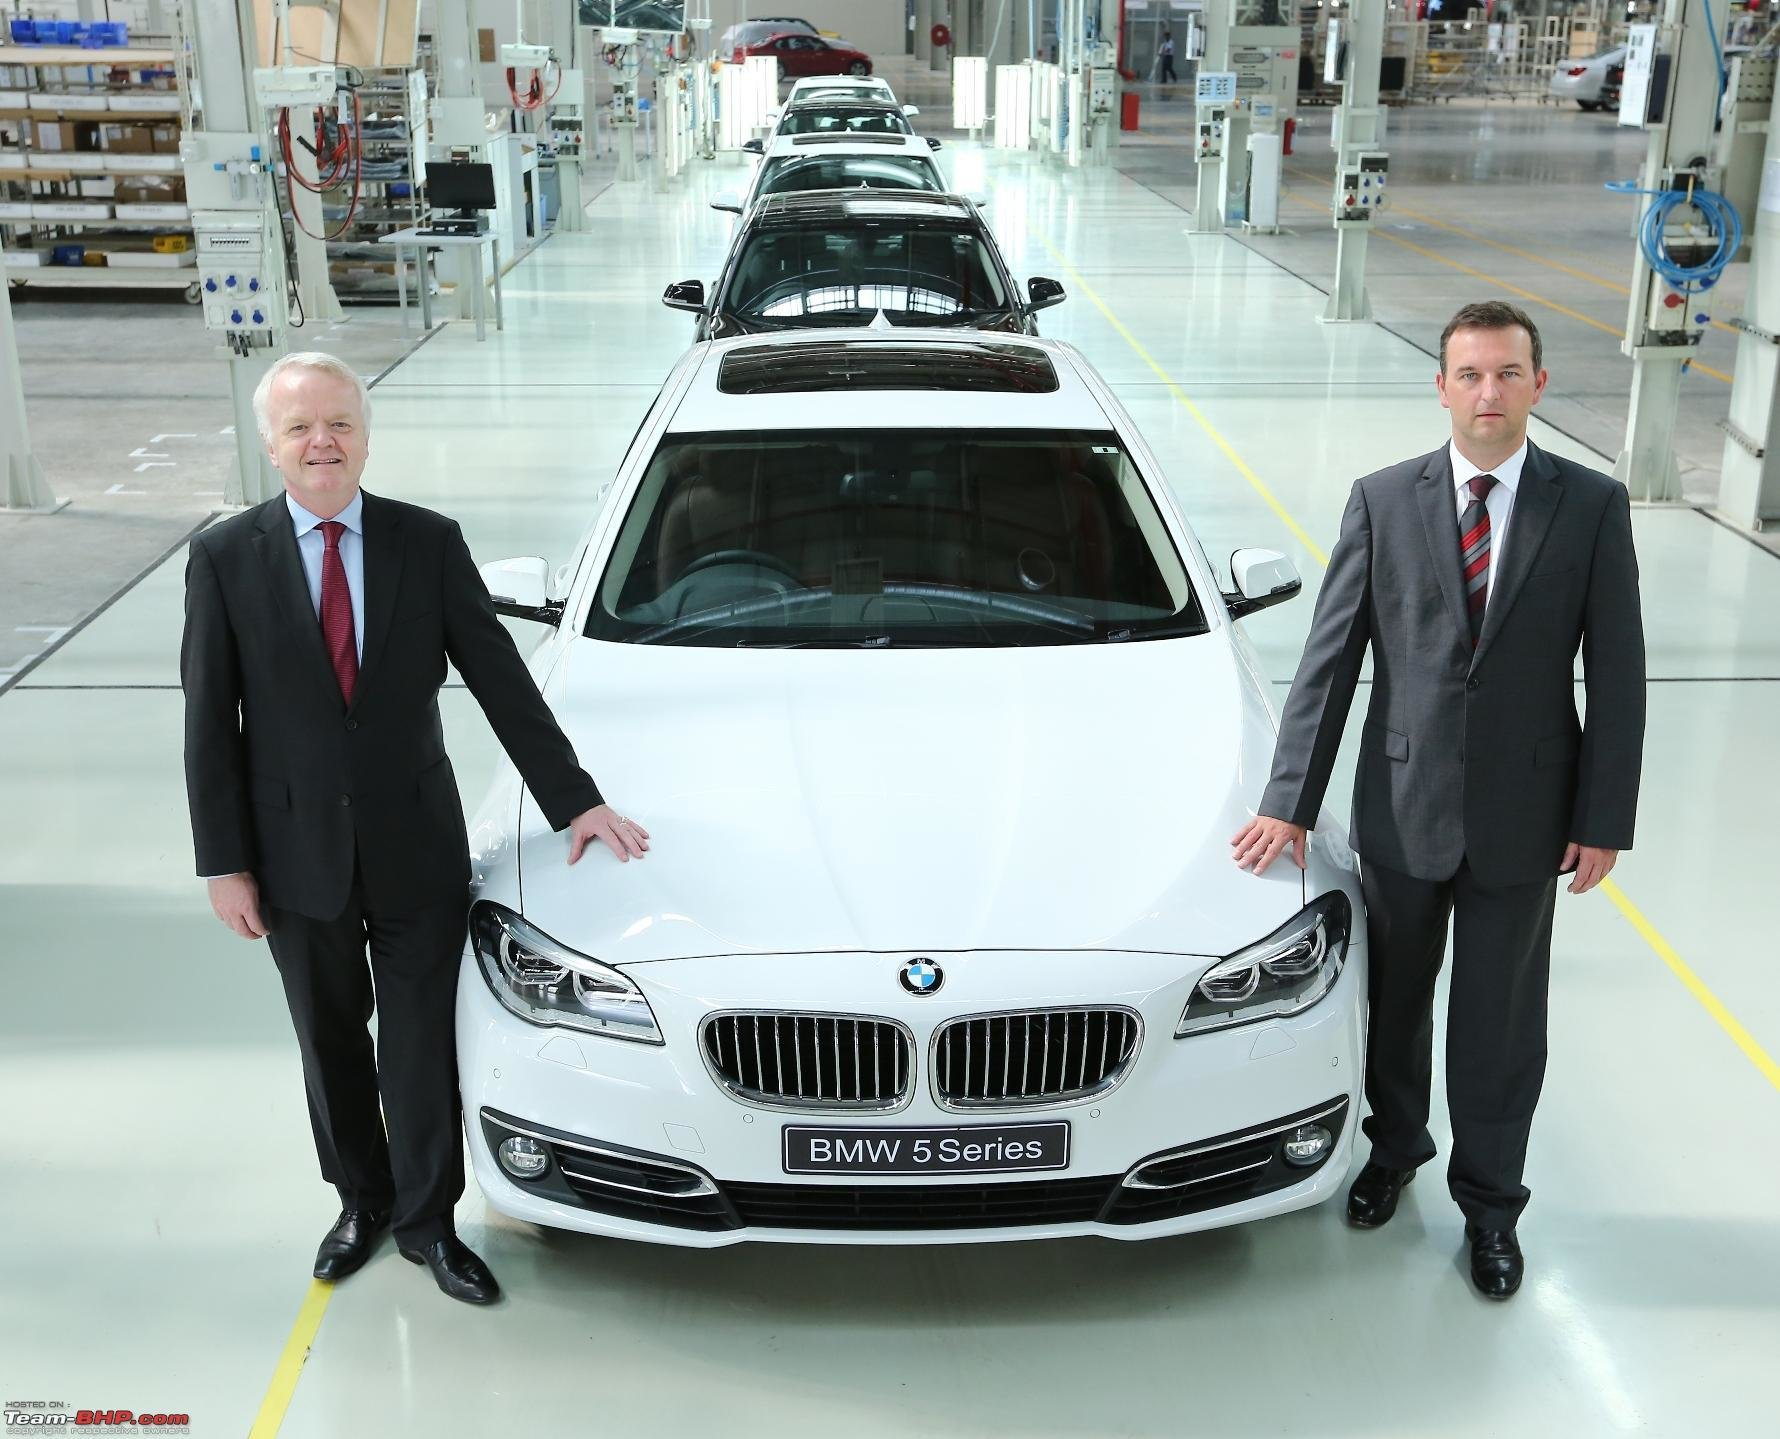 Latest Bmw Factory In Chennai Edit 40 000Th Car Rolls Out Free Download